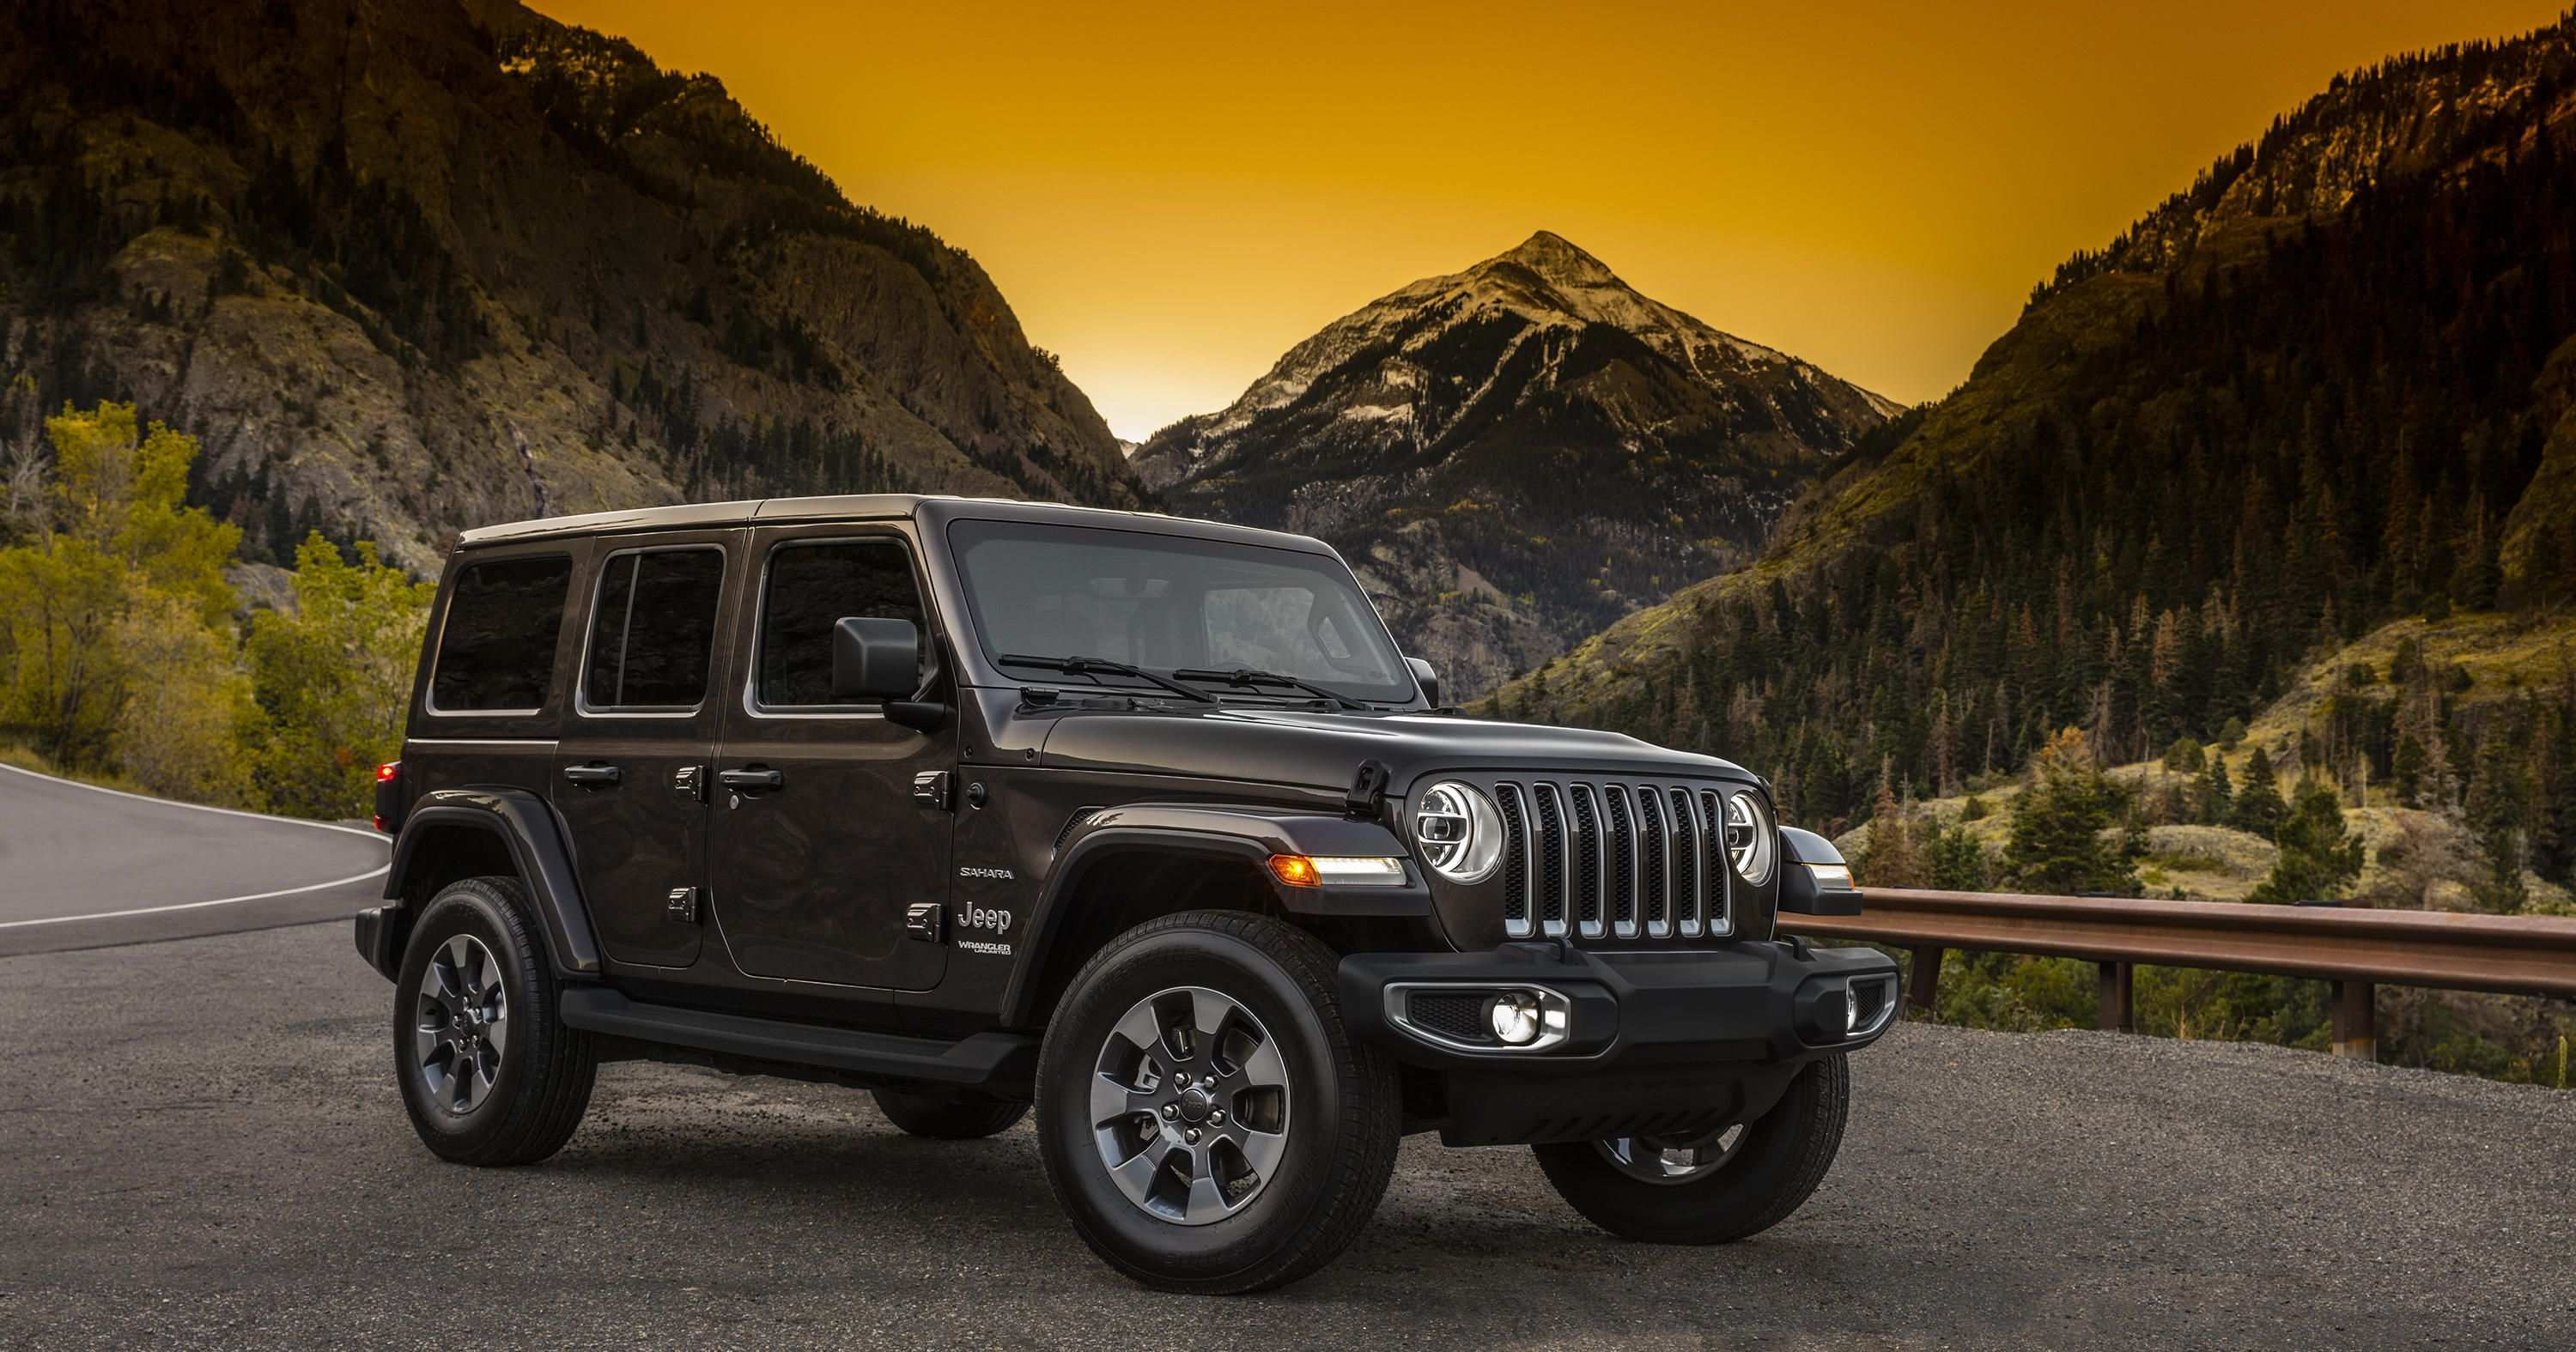 17 Gallery of 2019 Jeep Ecodiesel Specs and Review by 2019 Jeep Ecodiesel